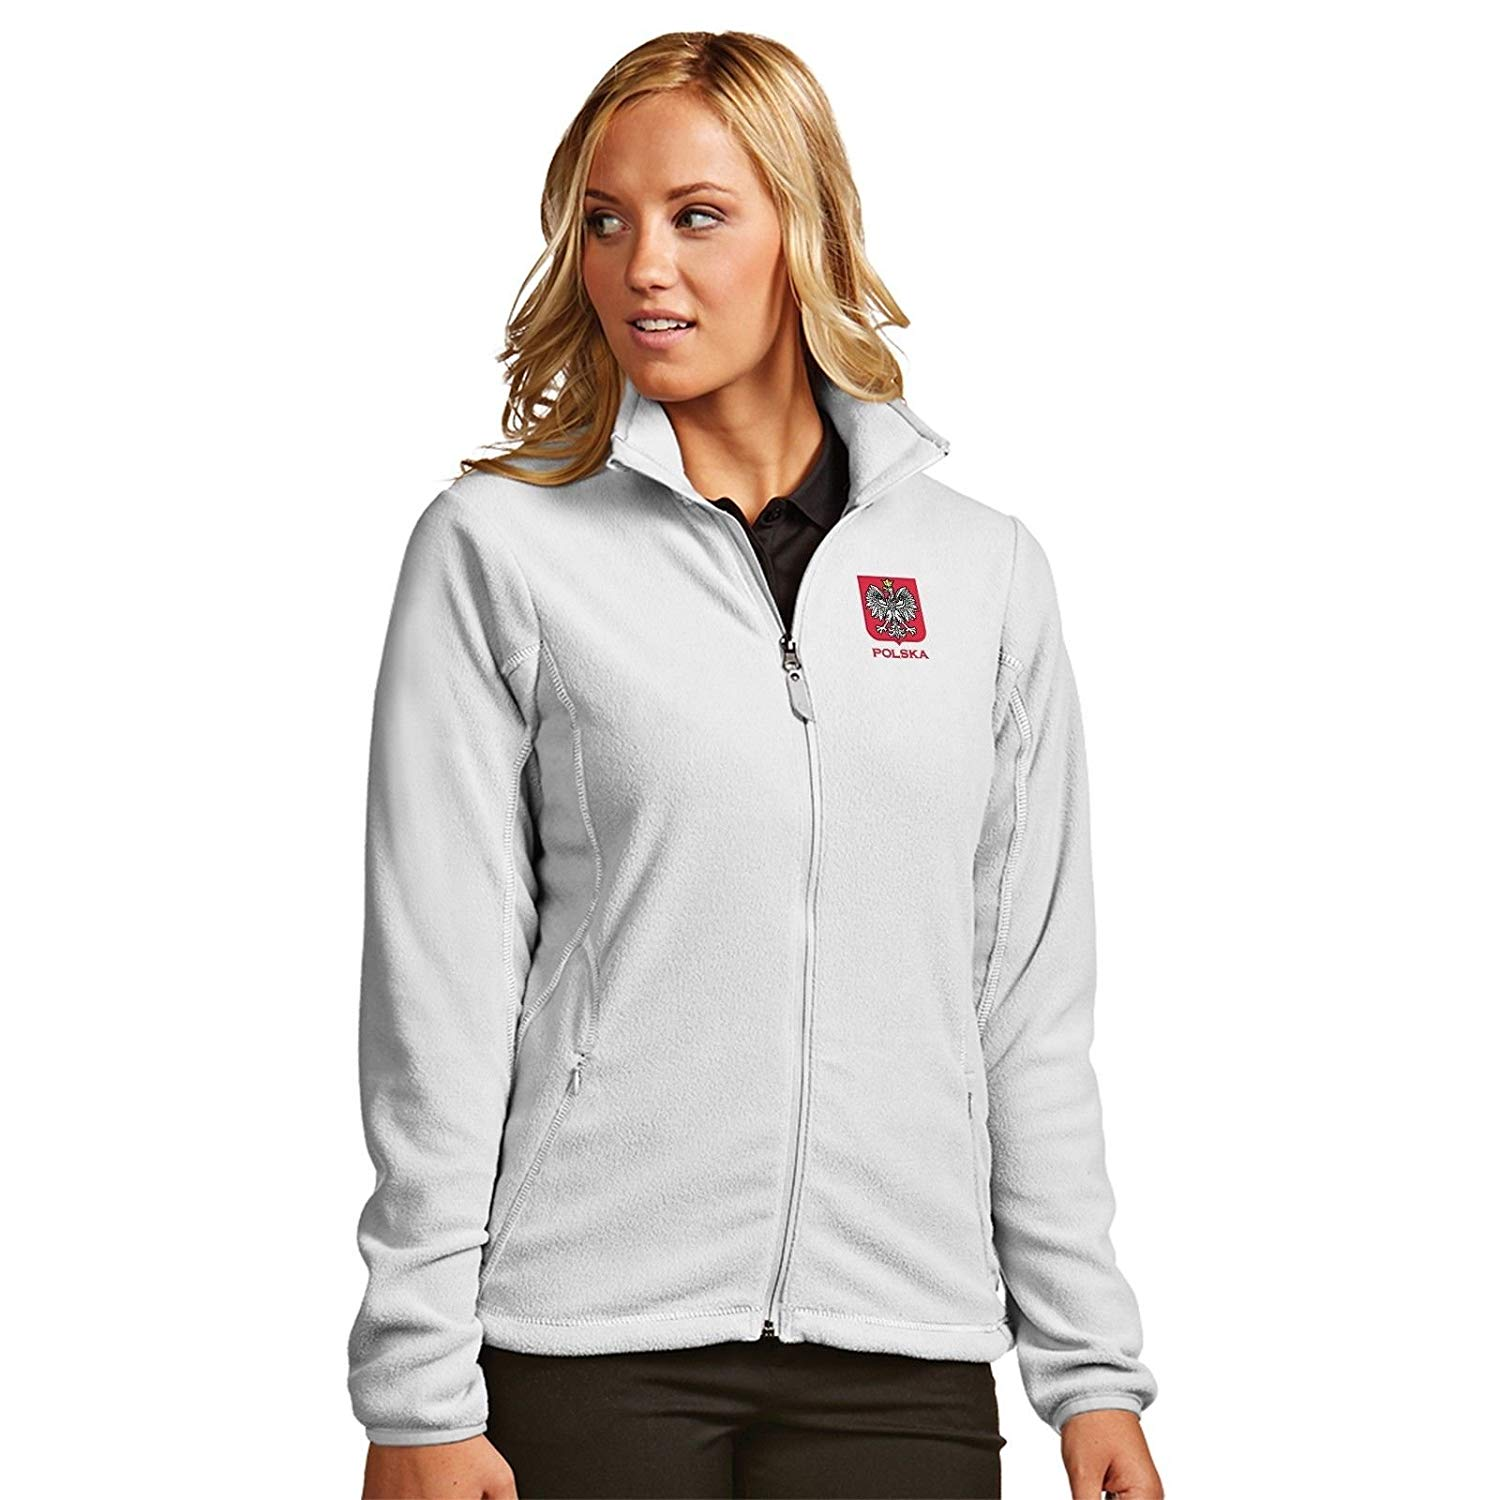 dd1566a38 Sports Outlet Express Womens Polish Polska Antigua Ice Breaker Outerwear  Jacket Eagle Embroidered